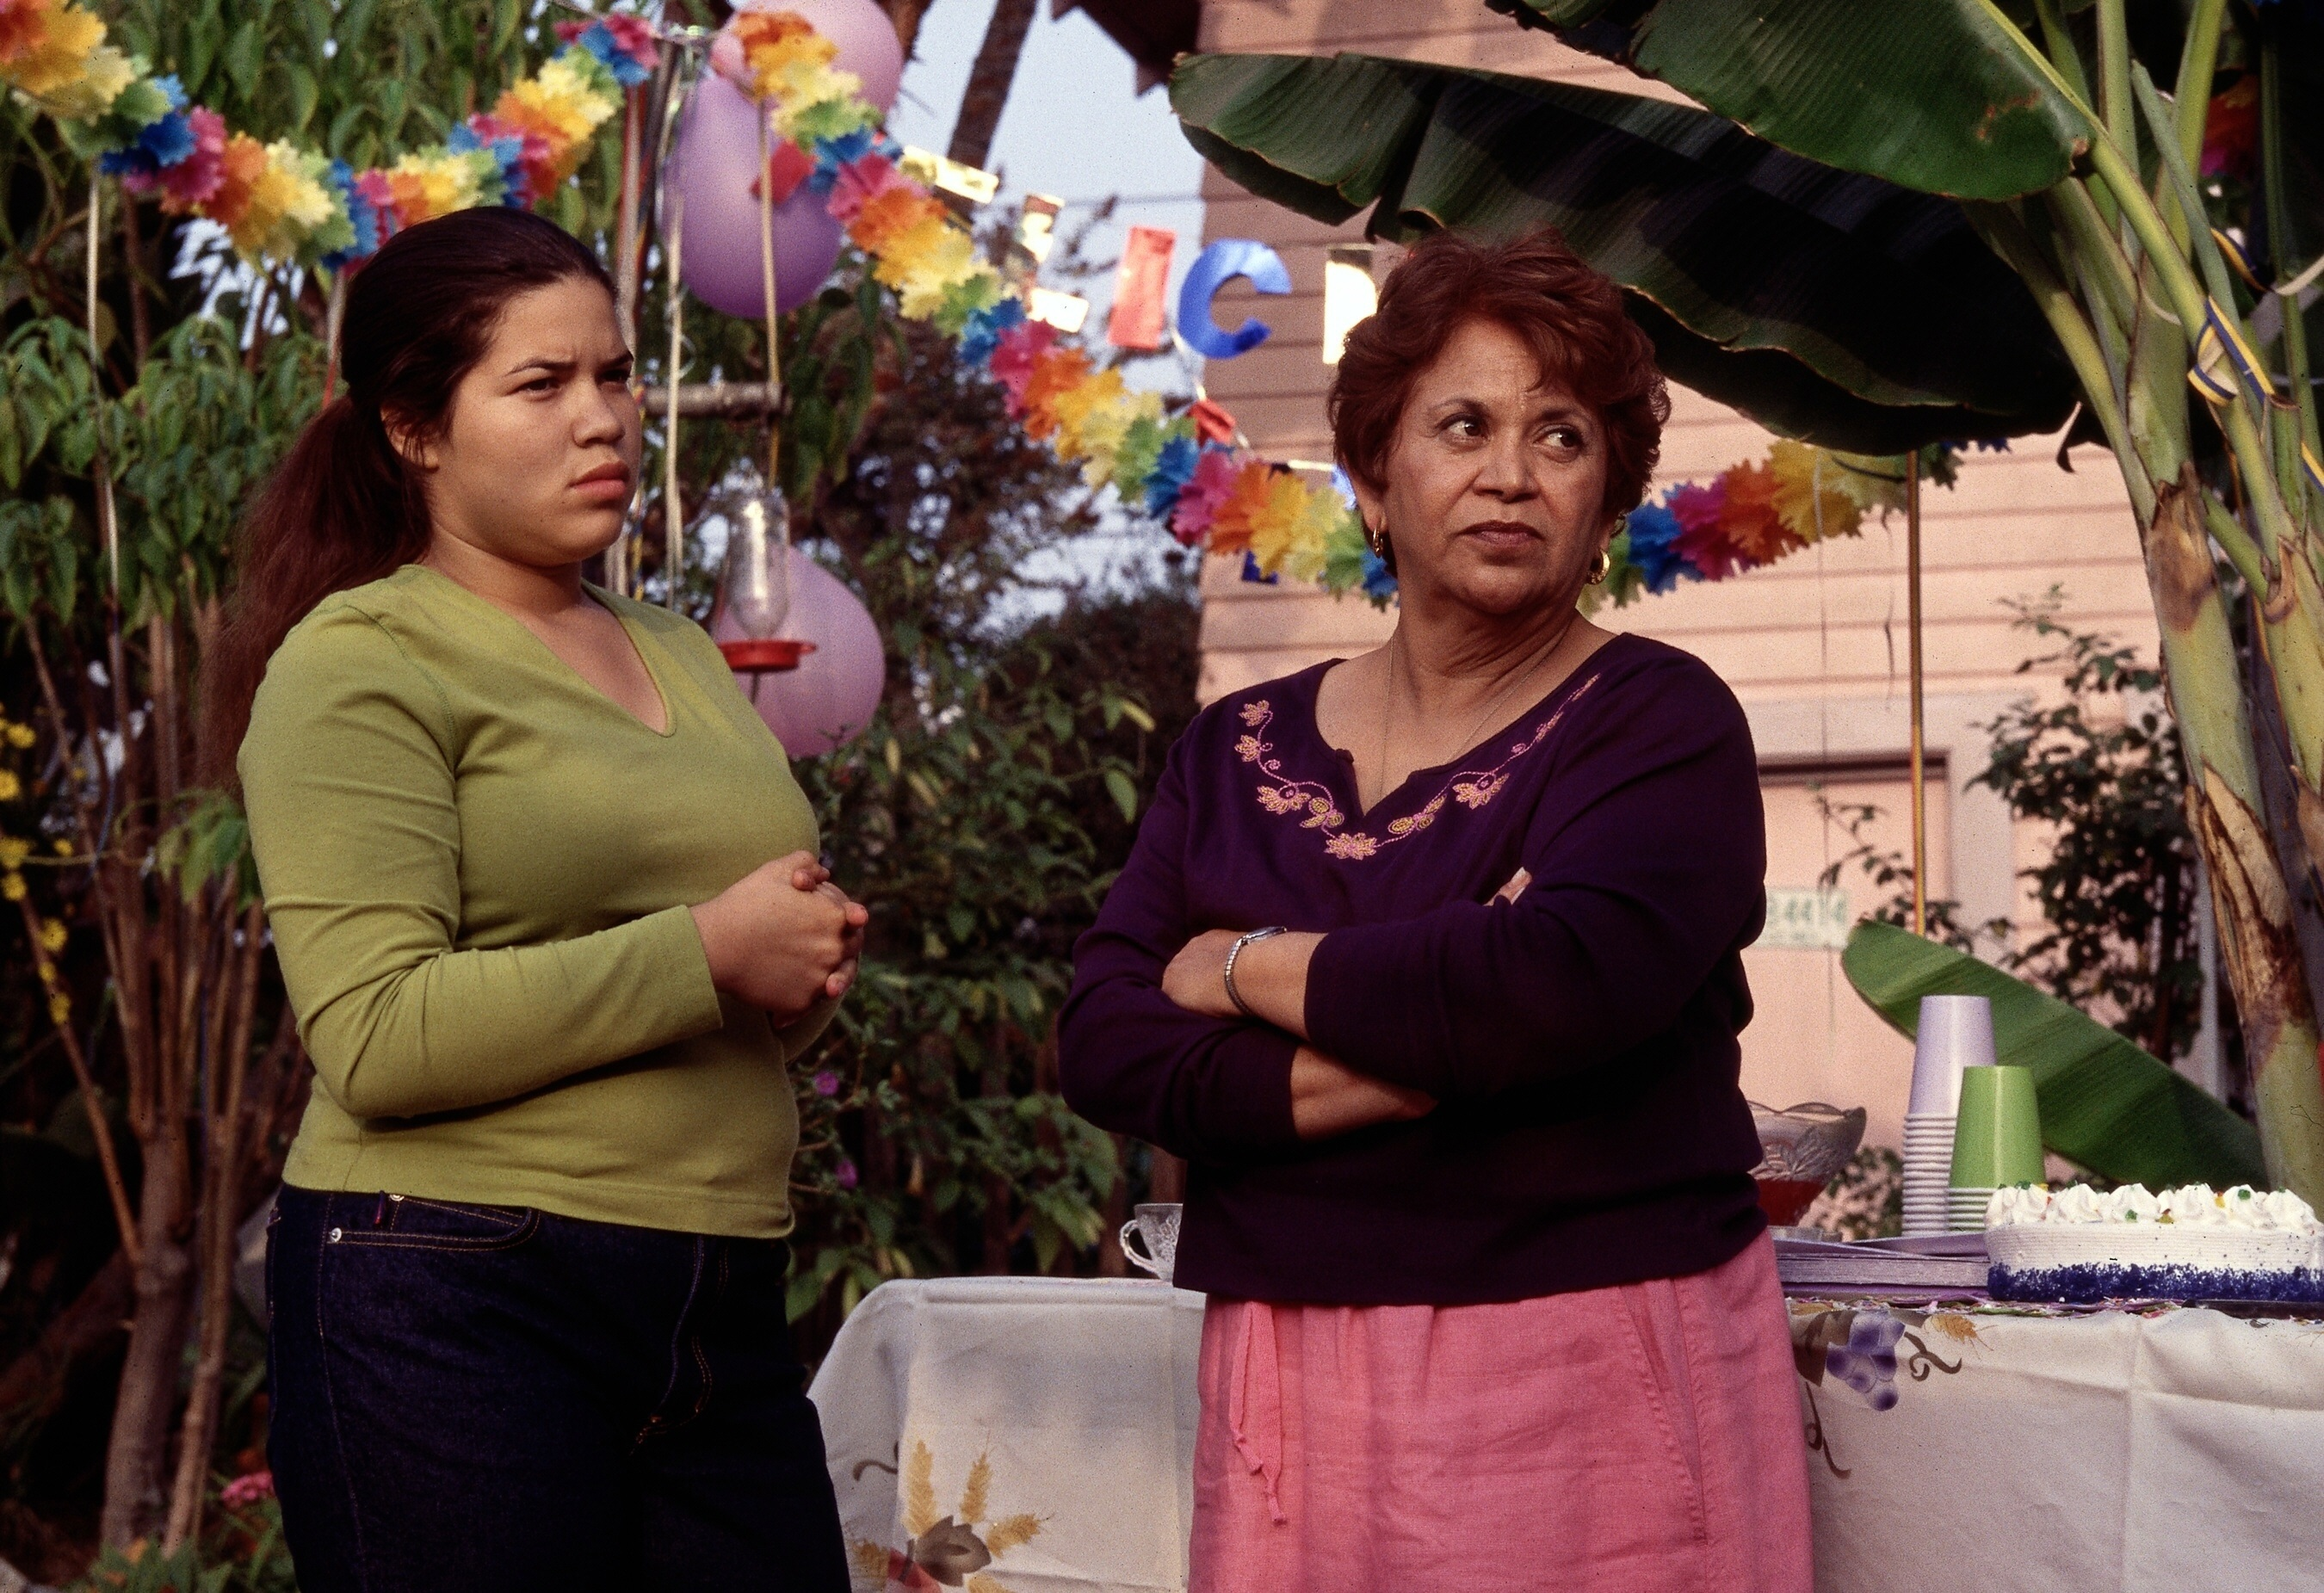 """America Ferrera and Lupe Ontiveros in """"Real Women Have Curves"""" in 2002."""